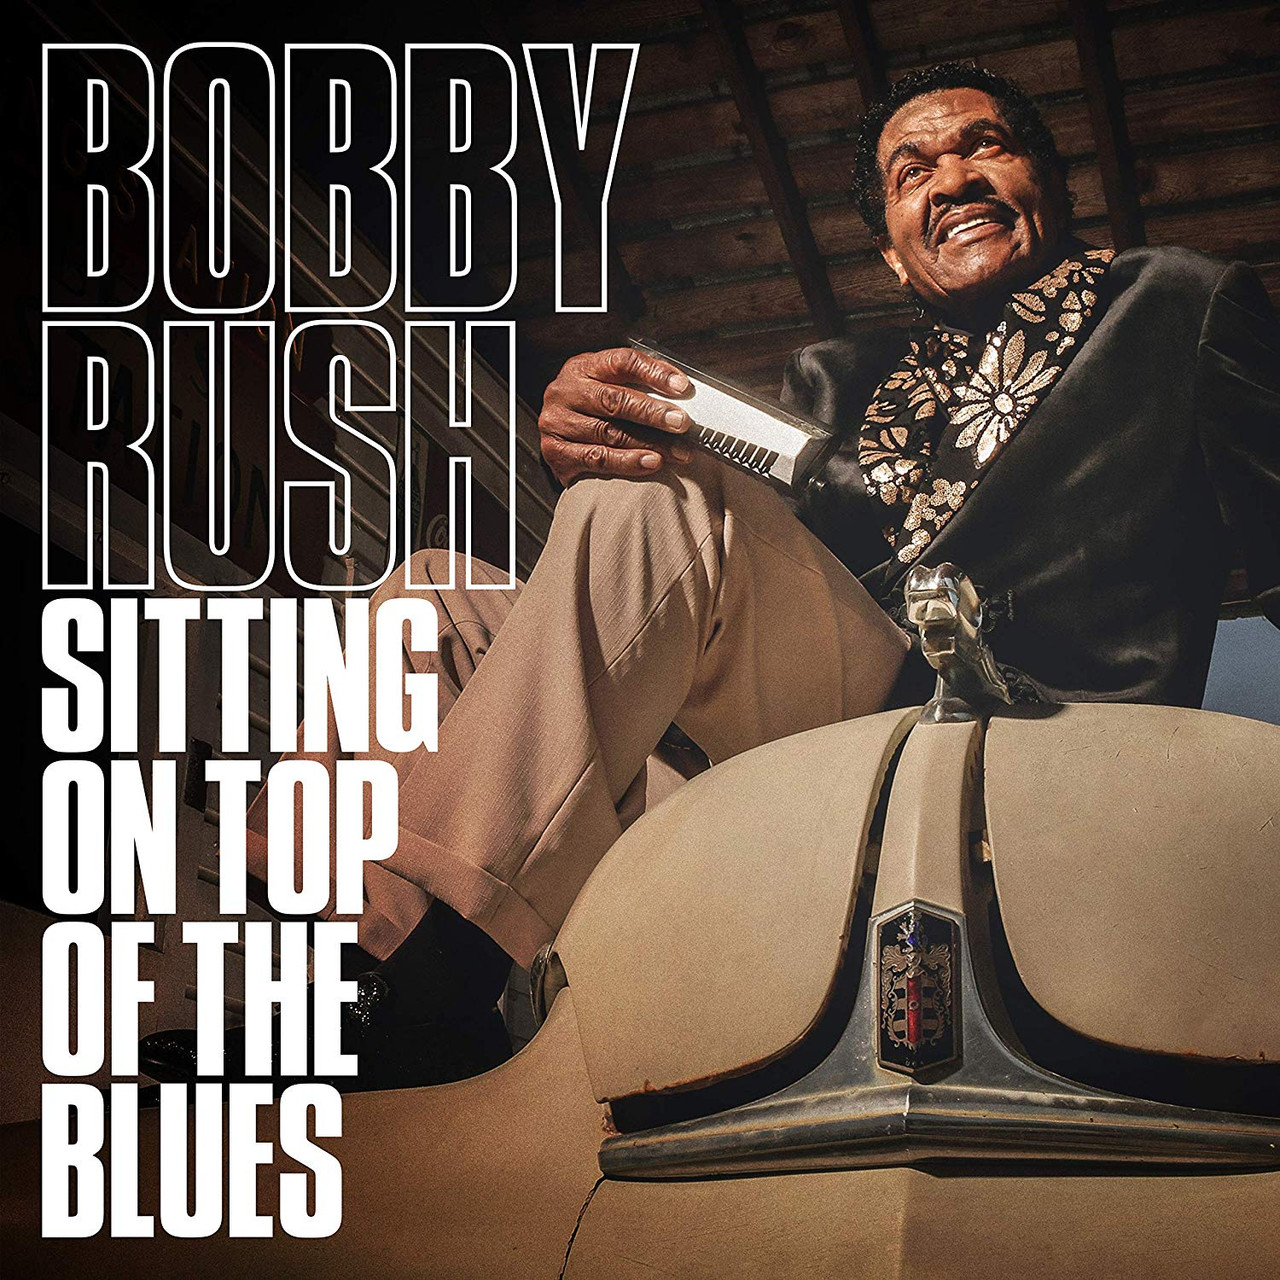 Bobby Rush - Sitting on Top of the Blues CD